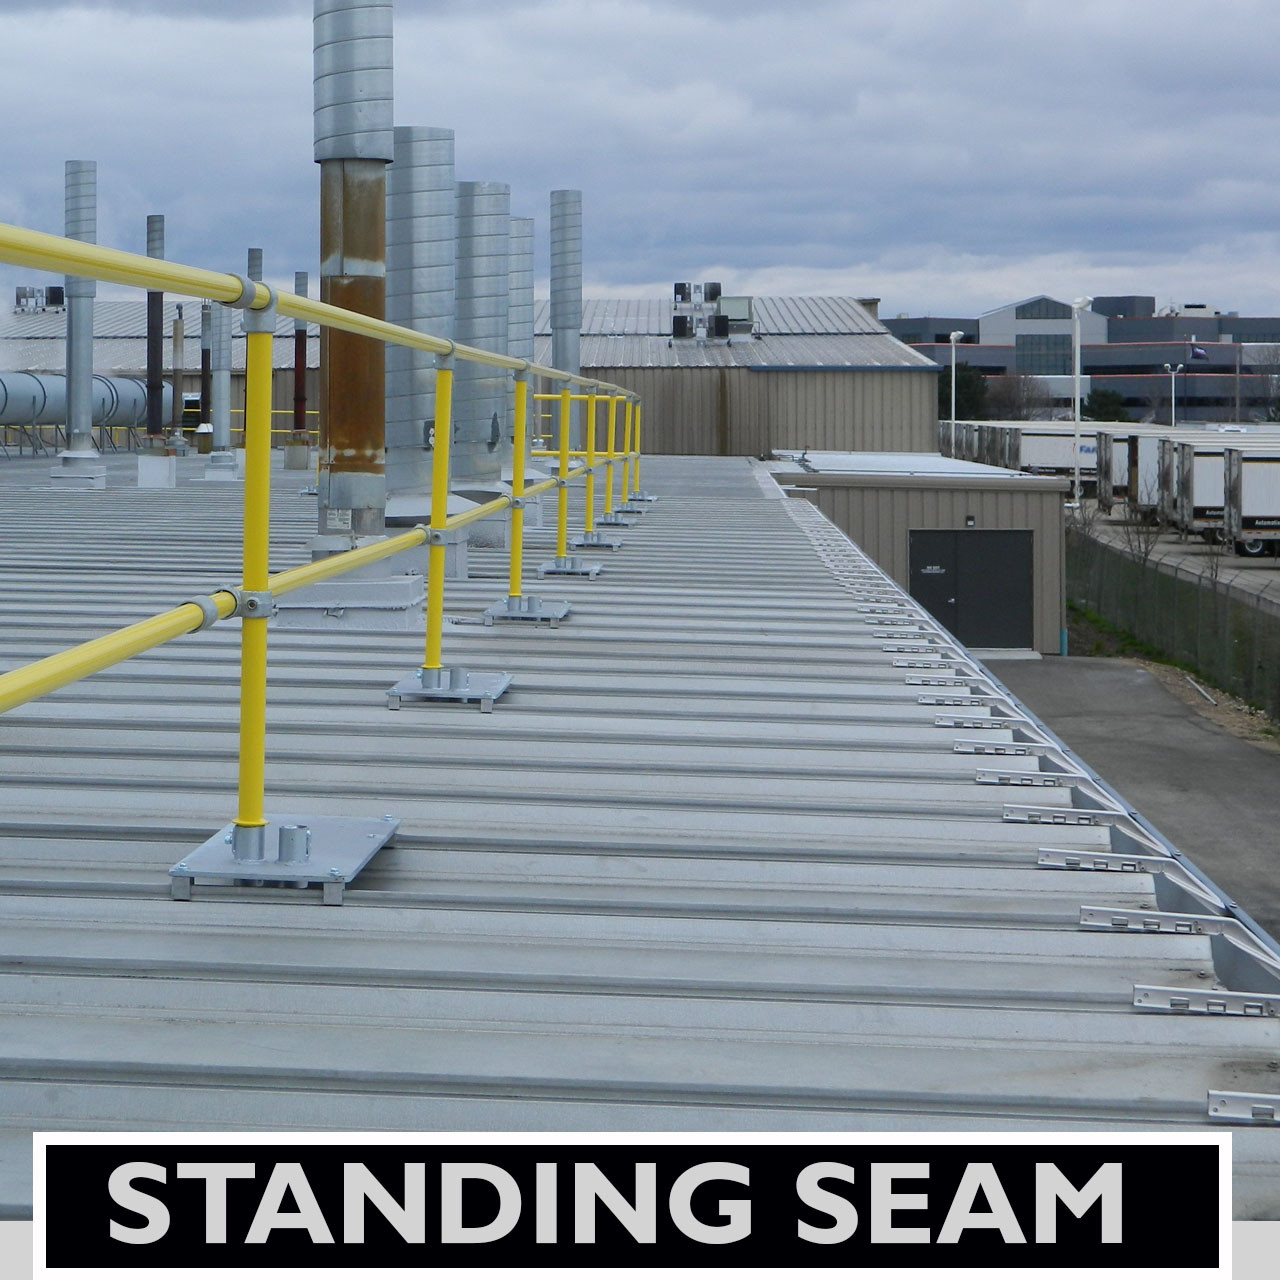 Accu Fit Guardrail For Standing Seam Metal Decks Safety